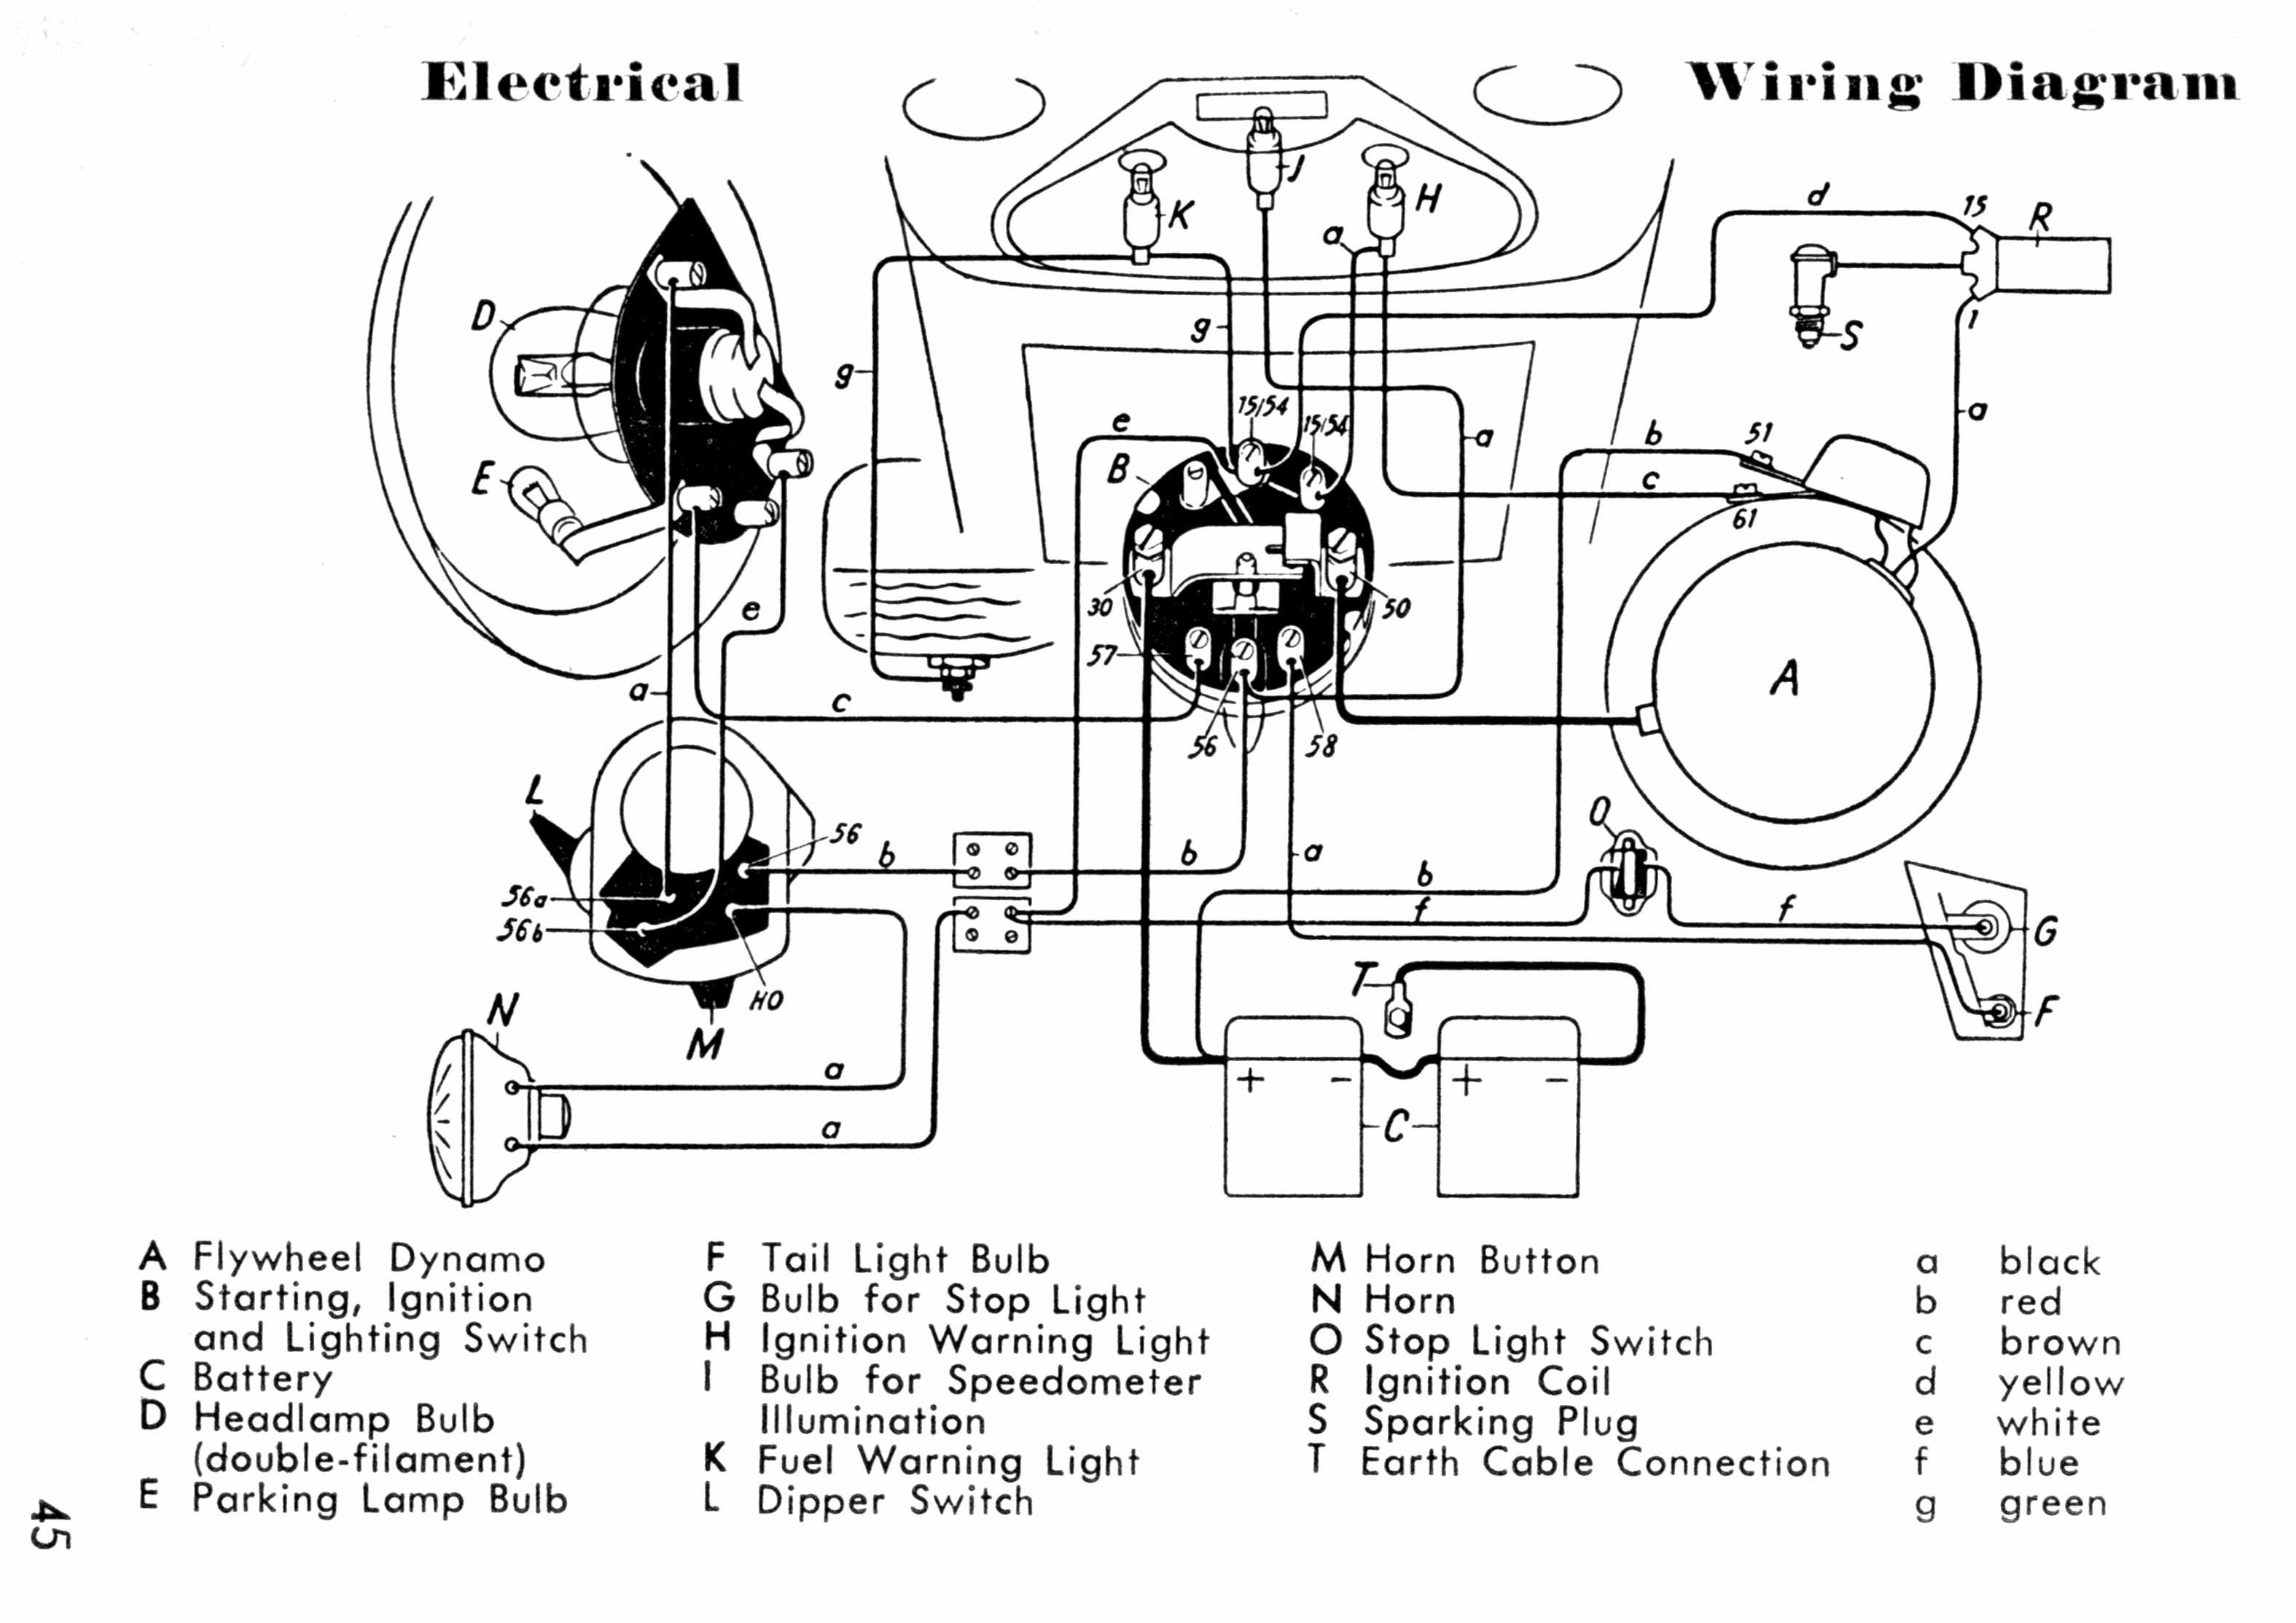 Moped Diagram Manual E Books Gy6 Ignition Wiring Simple Diagramschematic Electric Scooter Closet